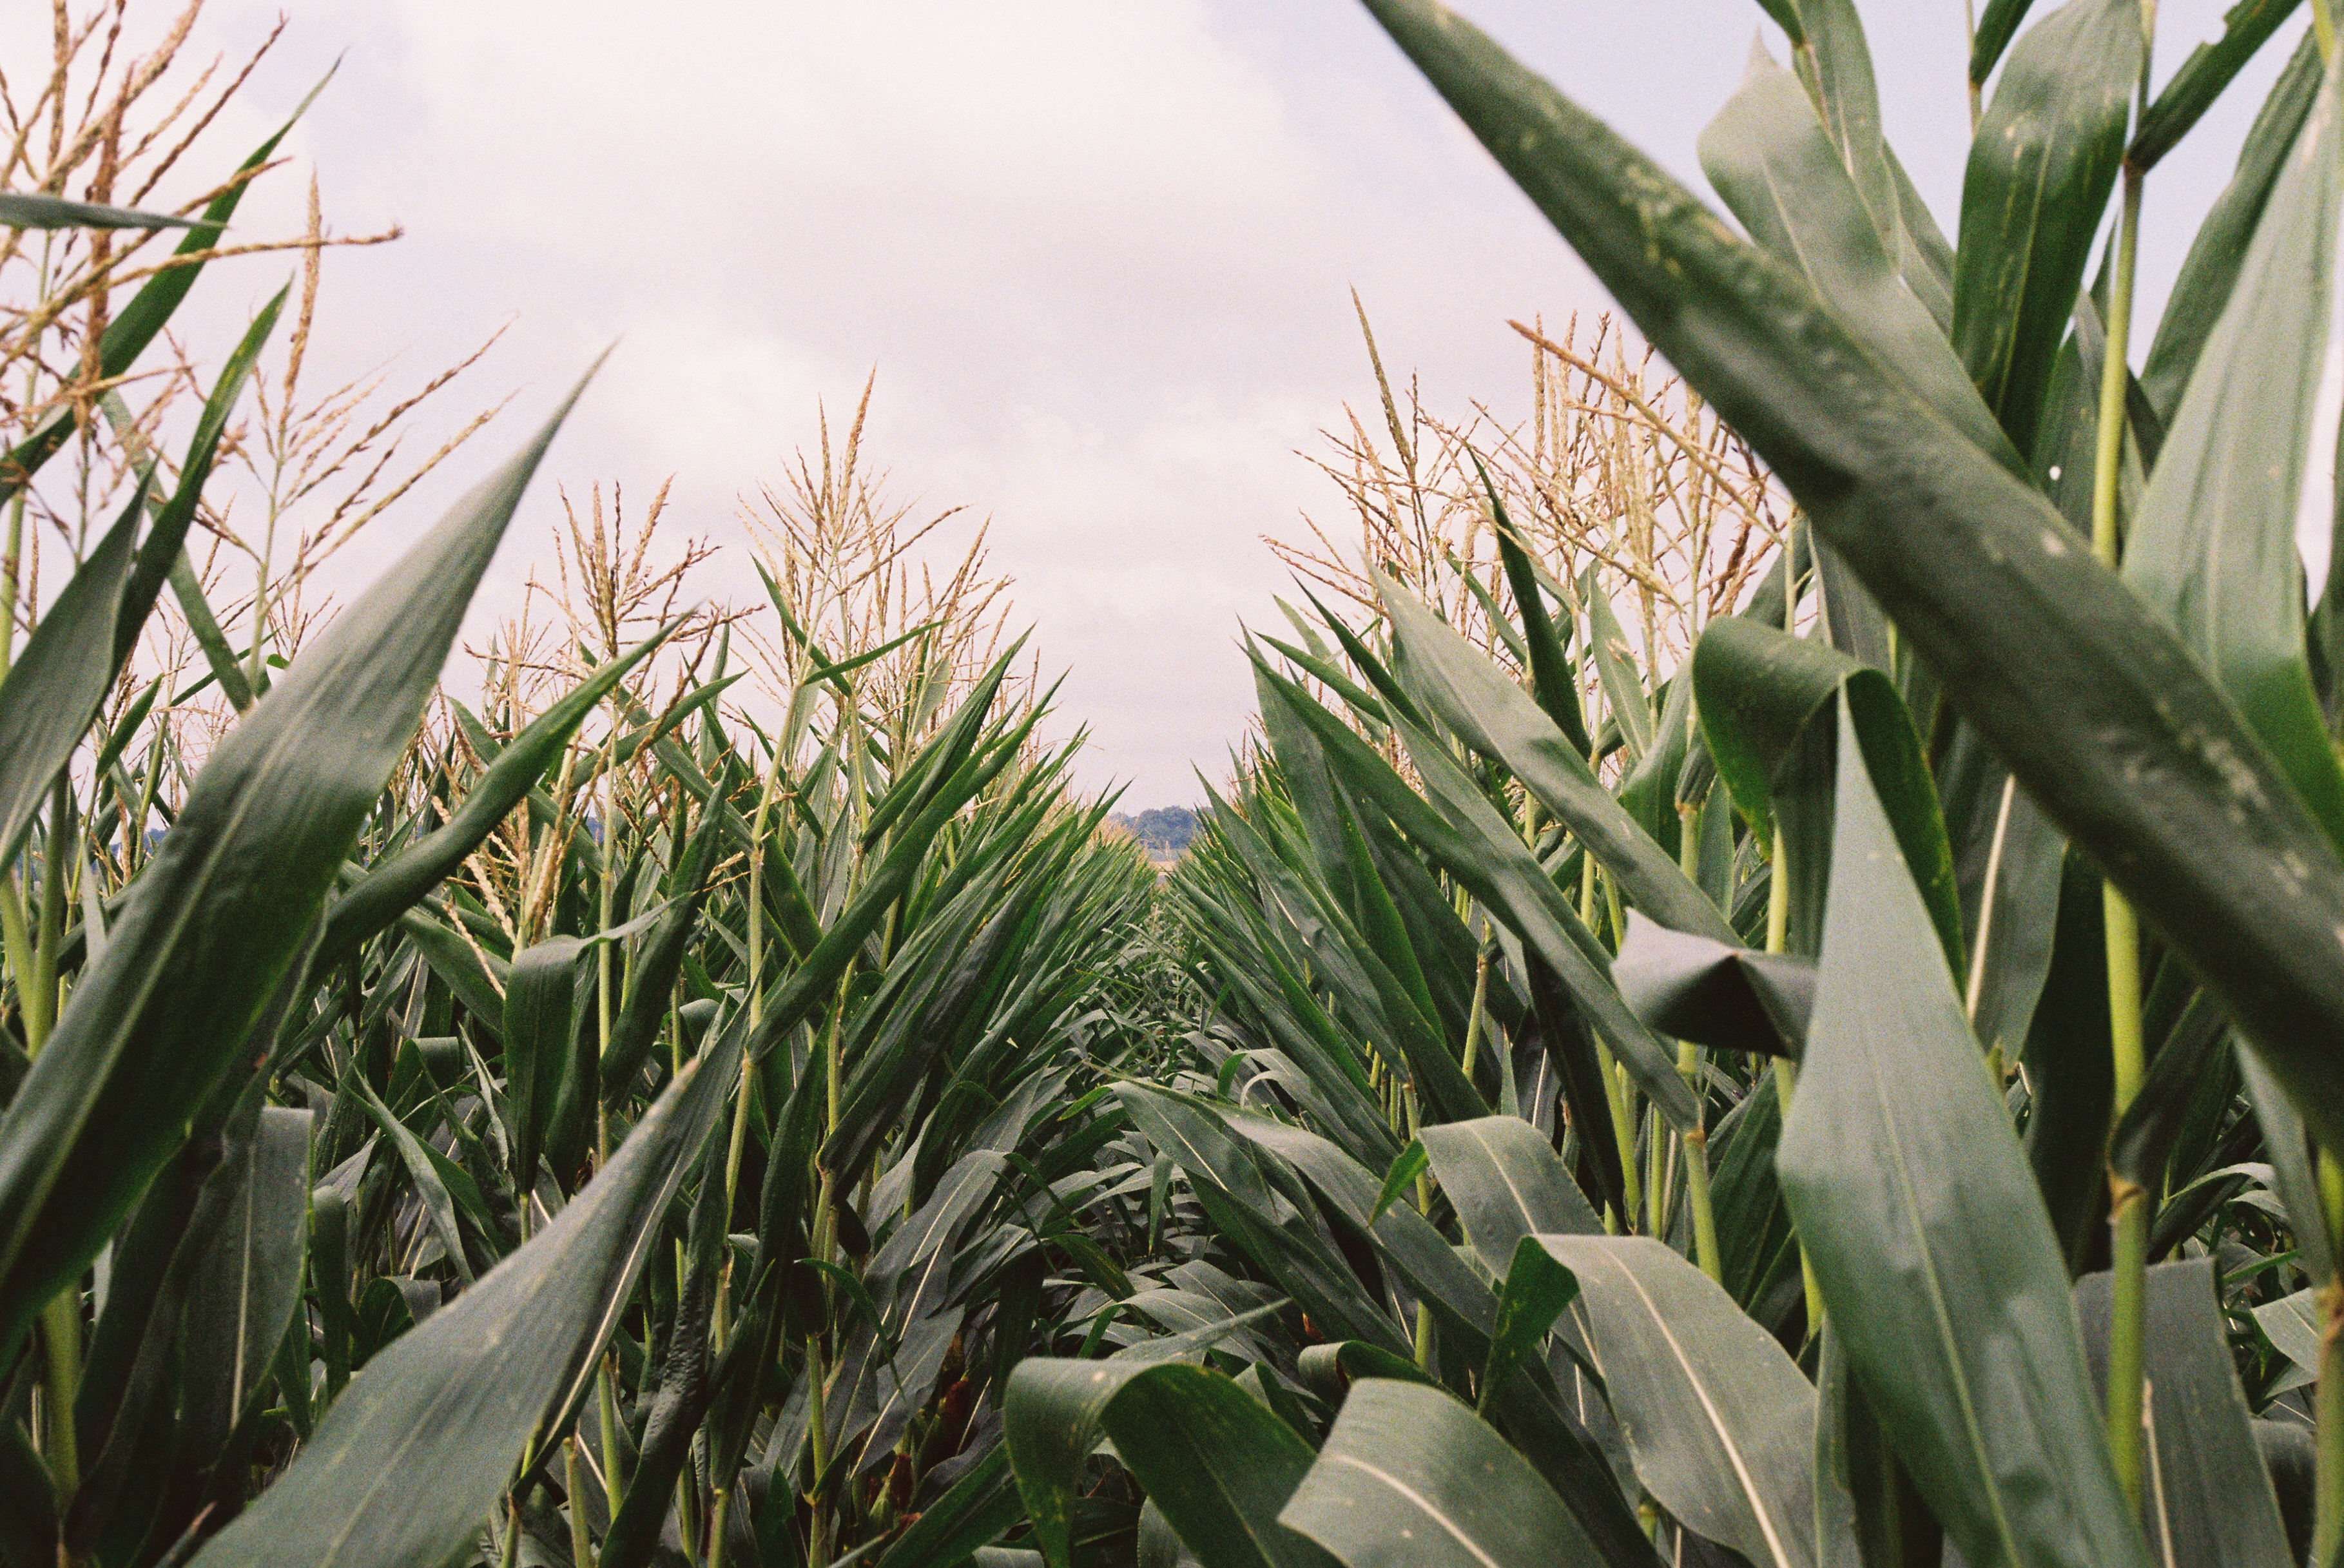 Industrial scale monocropping is commonly observed in our agricultural landscape